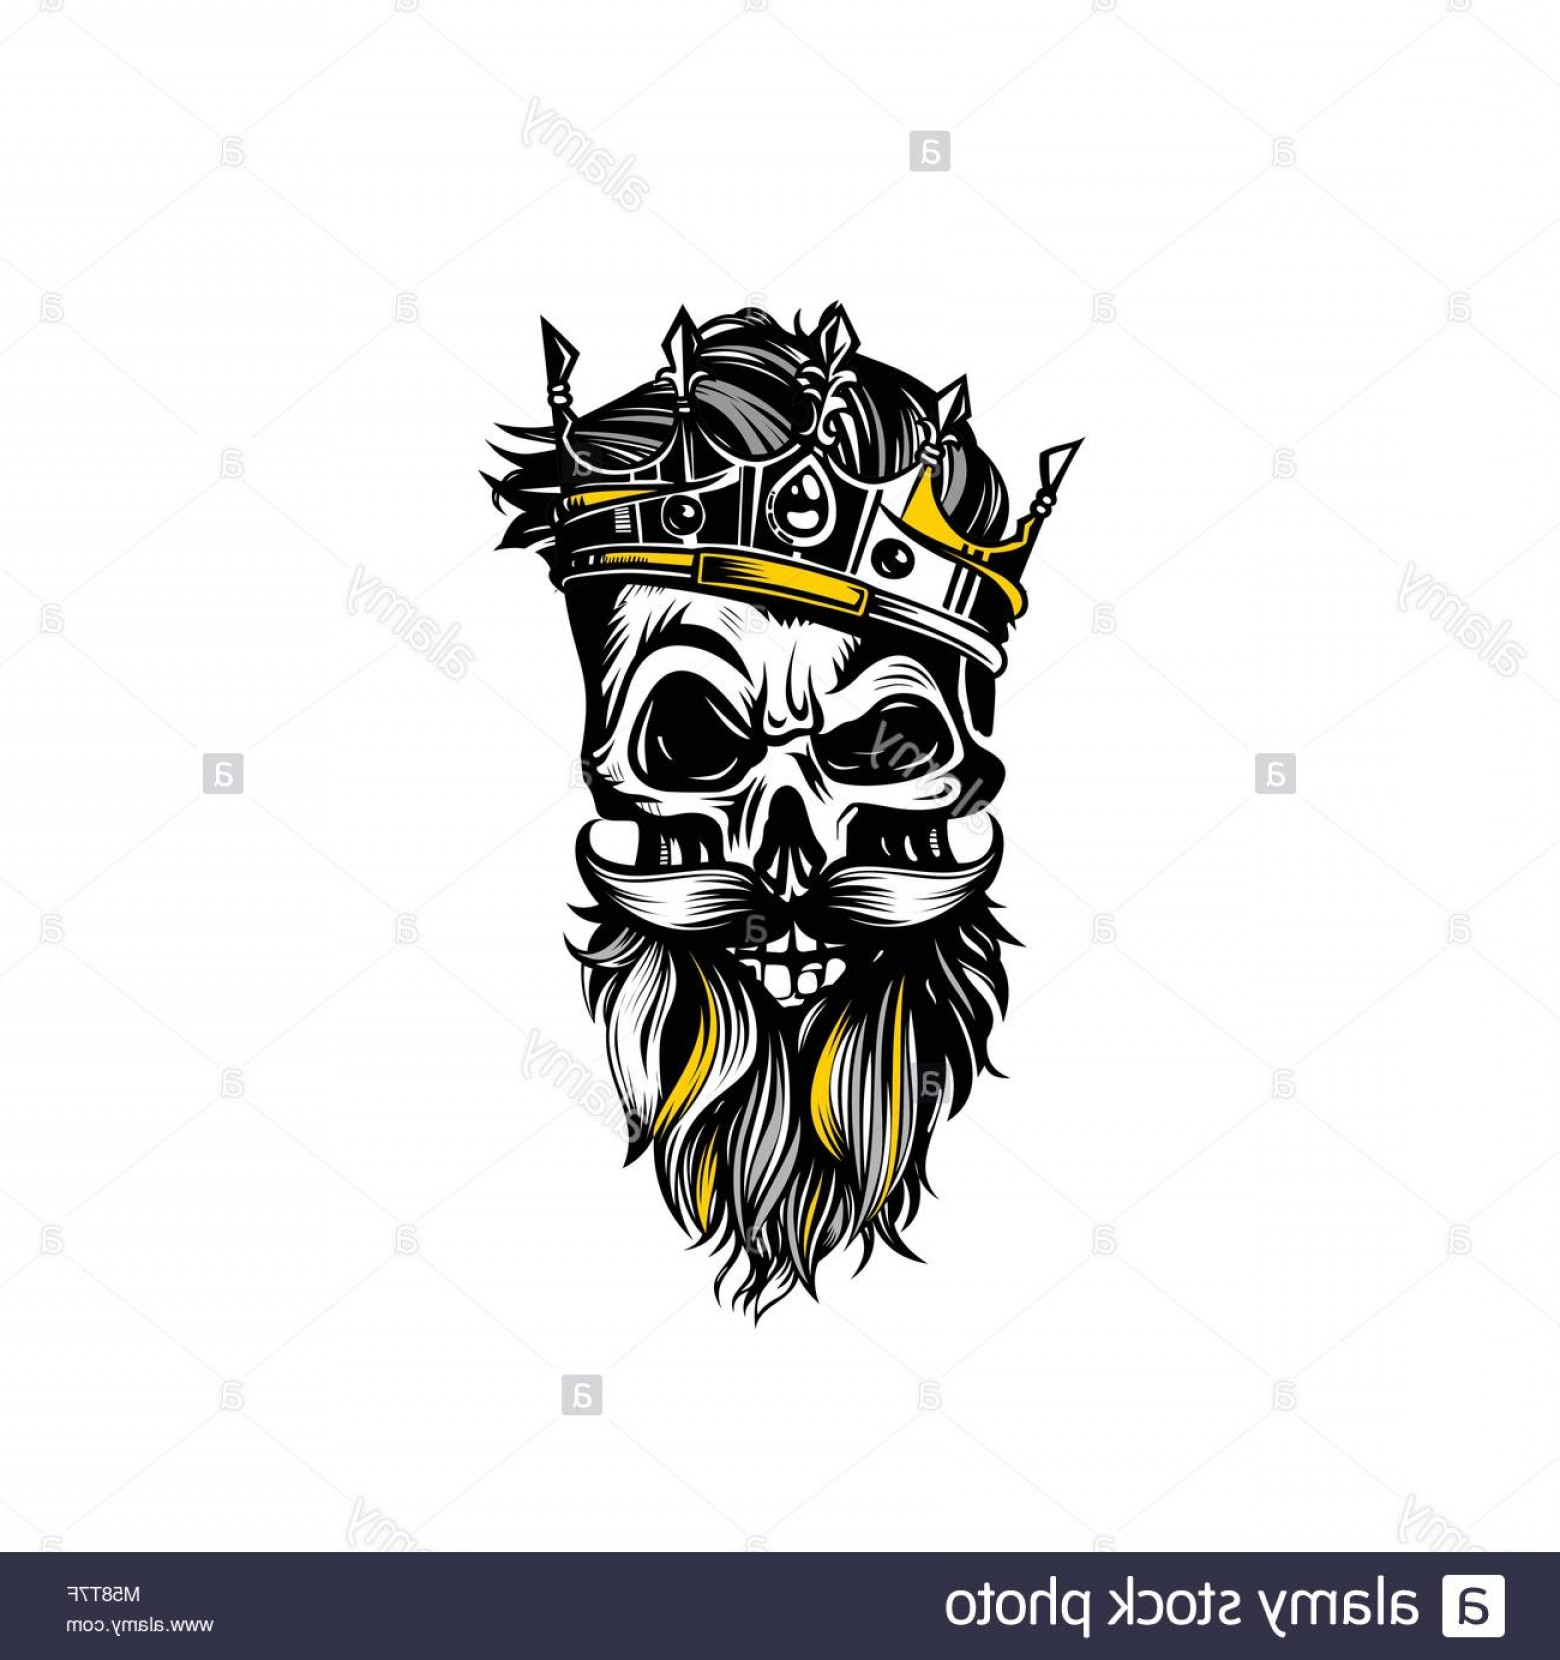 Skeleton Fist Vector: Stock Photo Hand Drawn Sketch Skull With Crown Vector Illustration